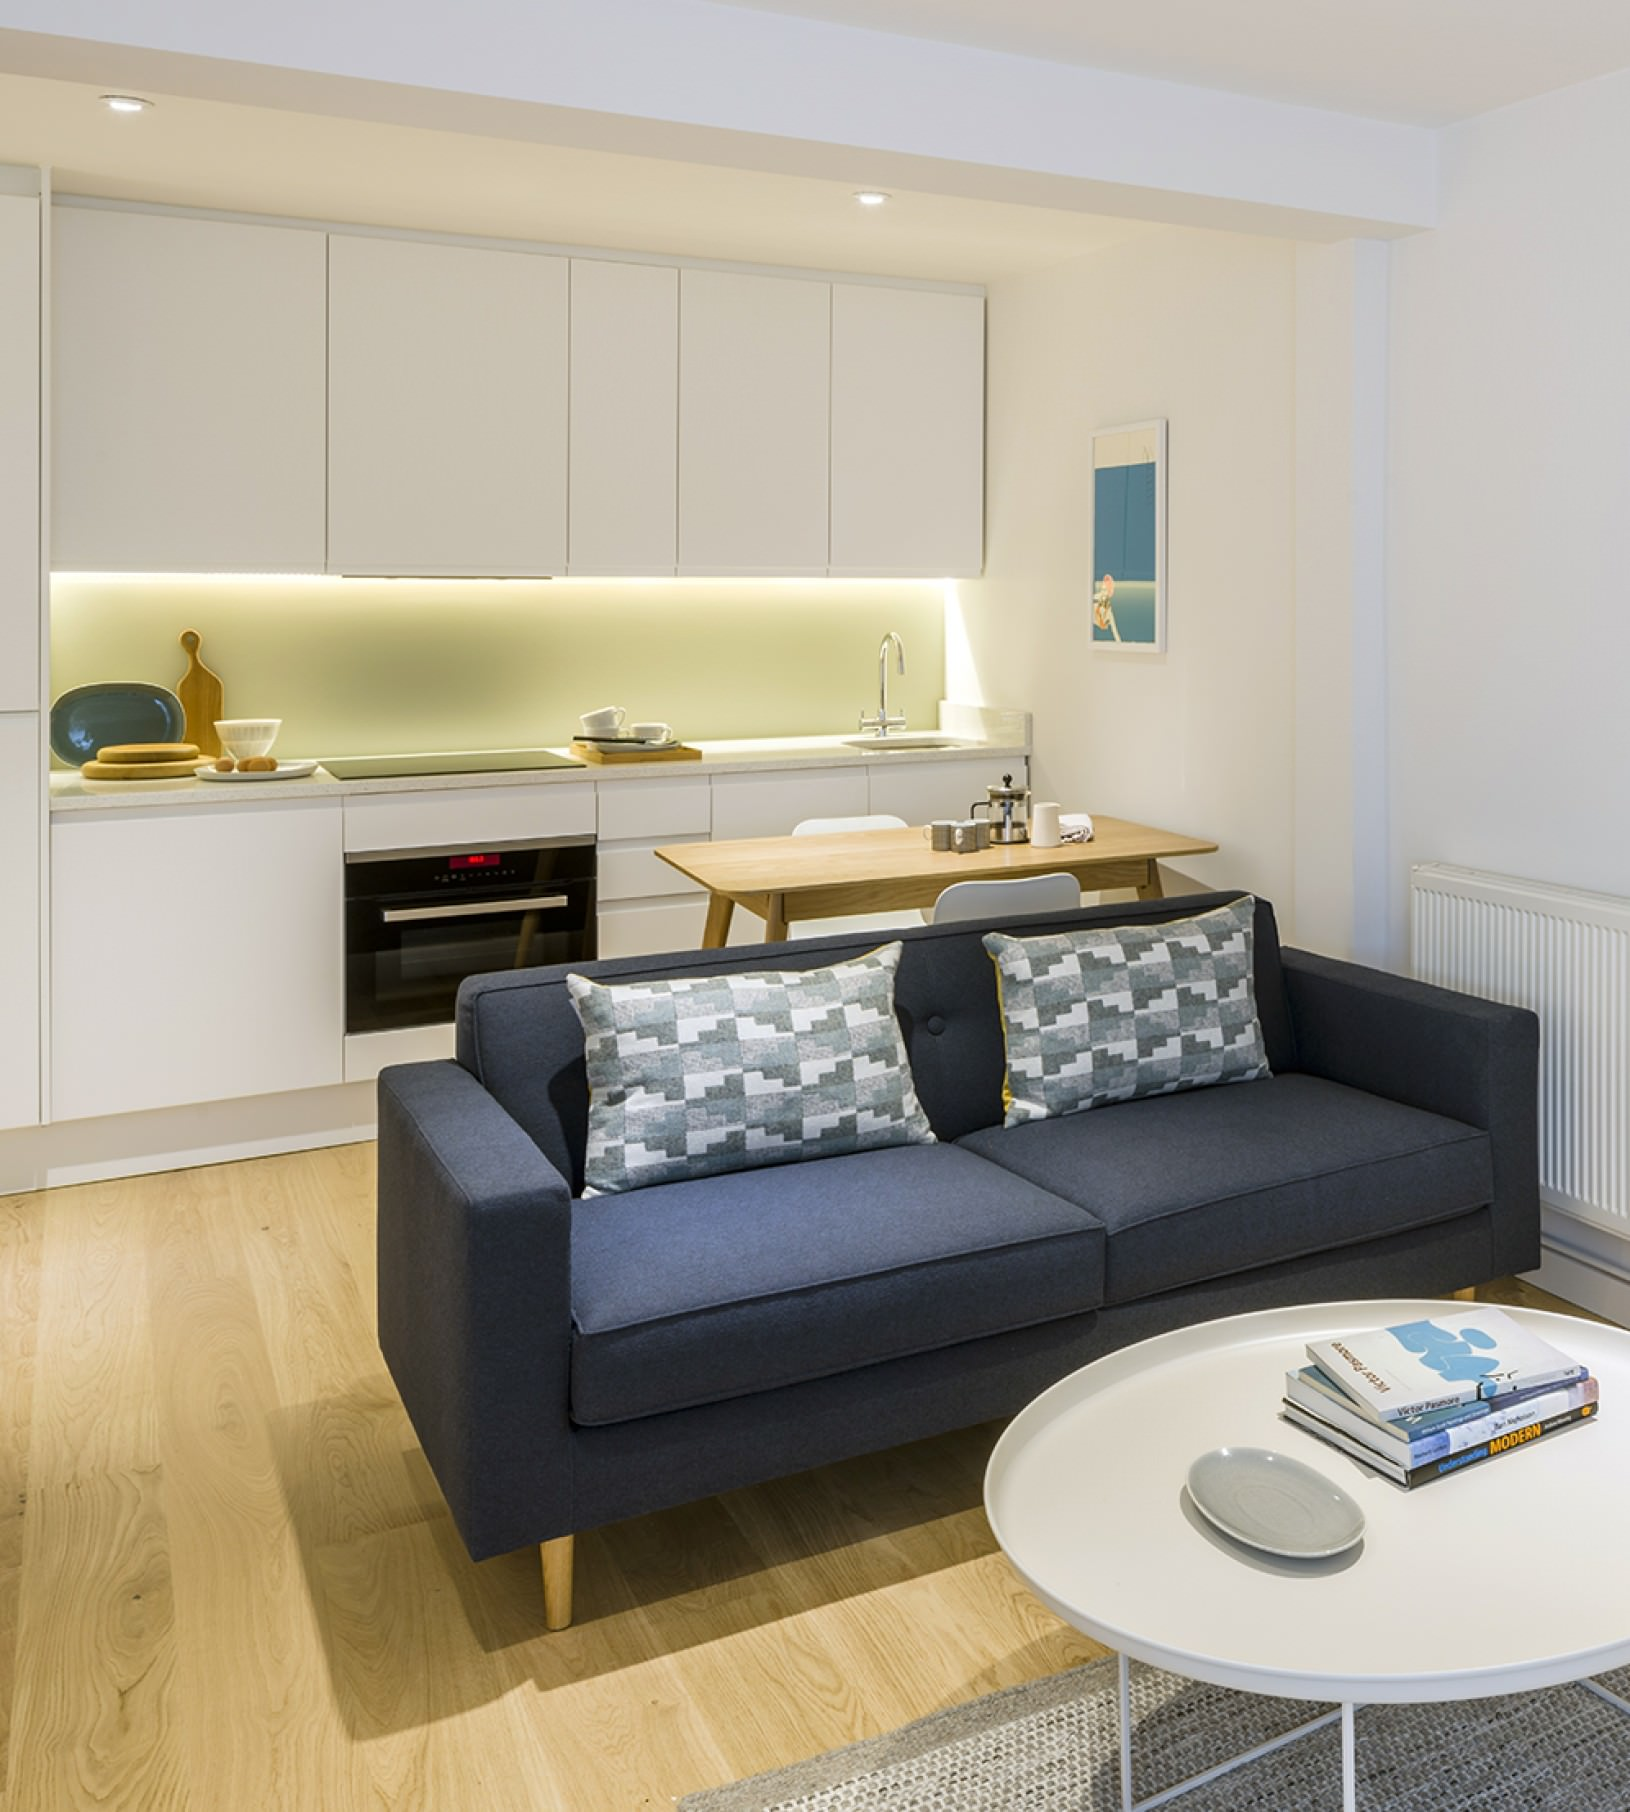 Fulham Road Apartments blue Case sofa